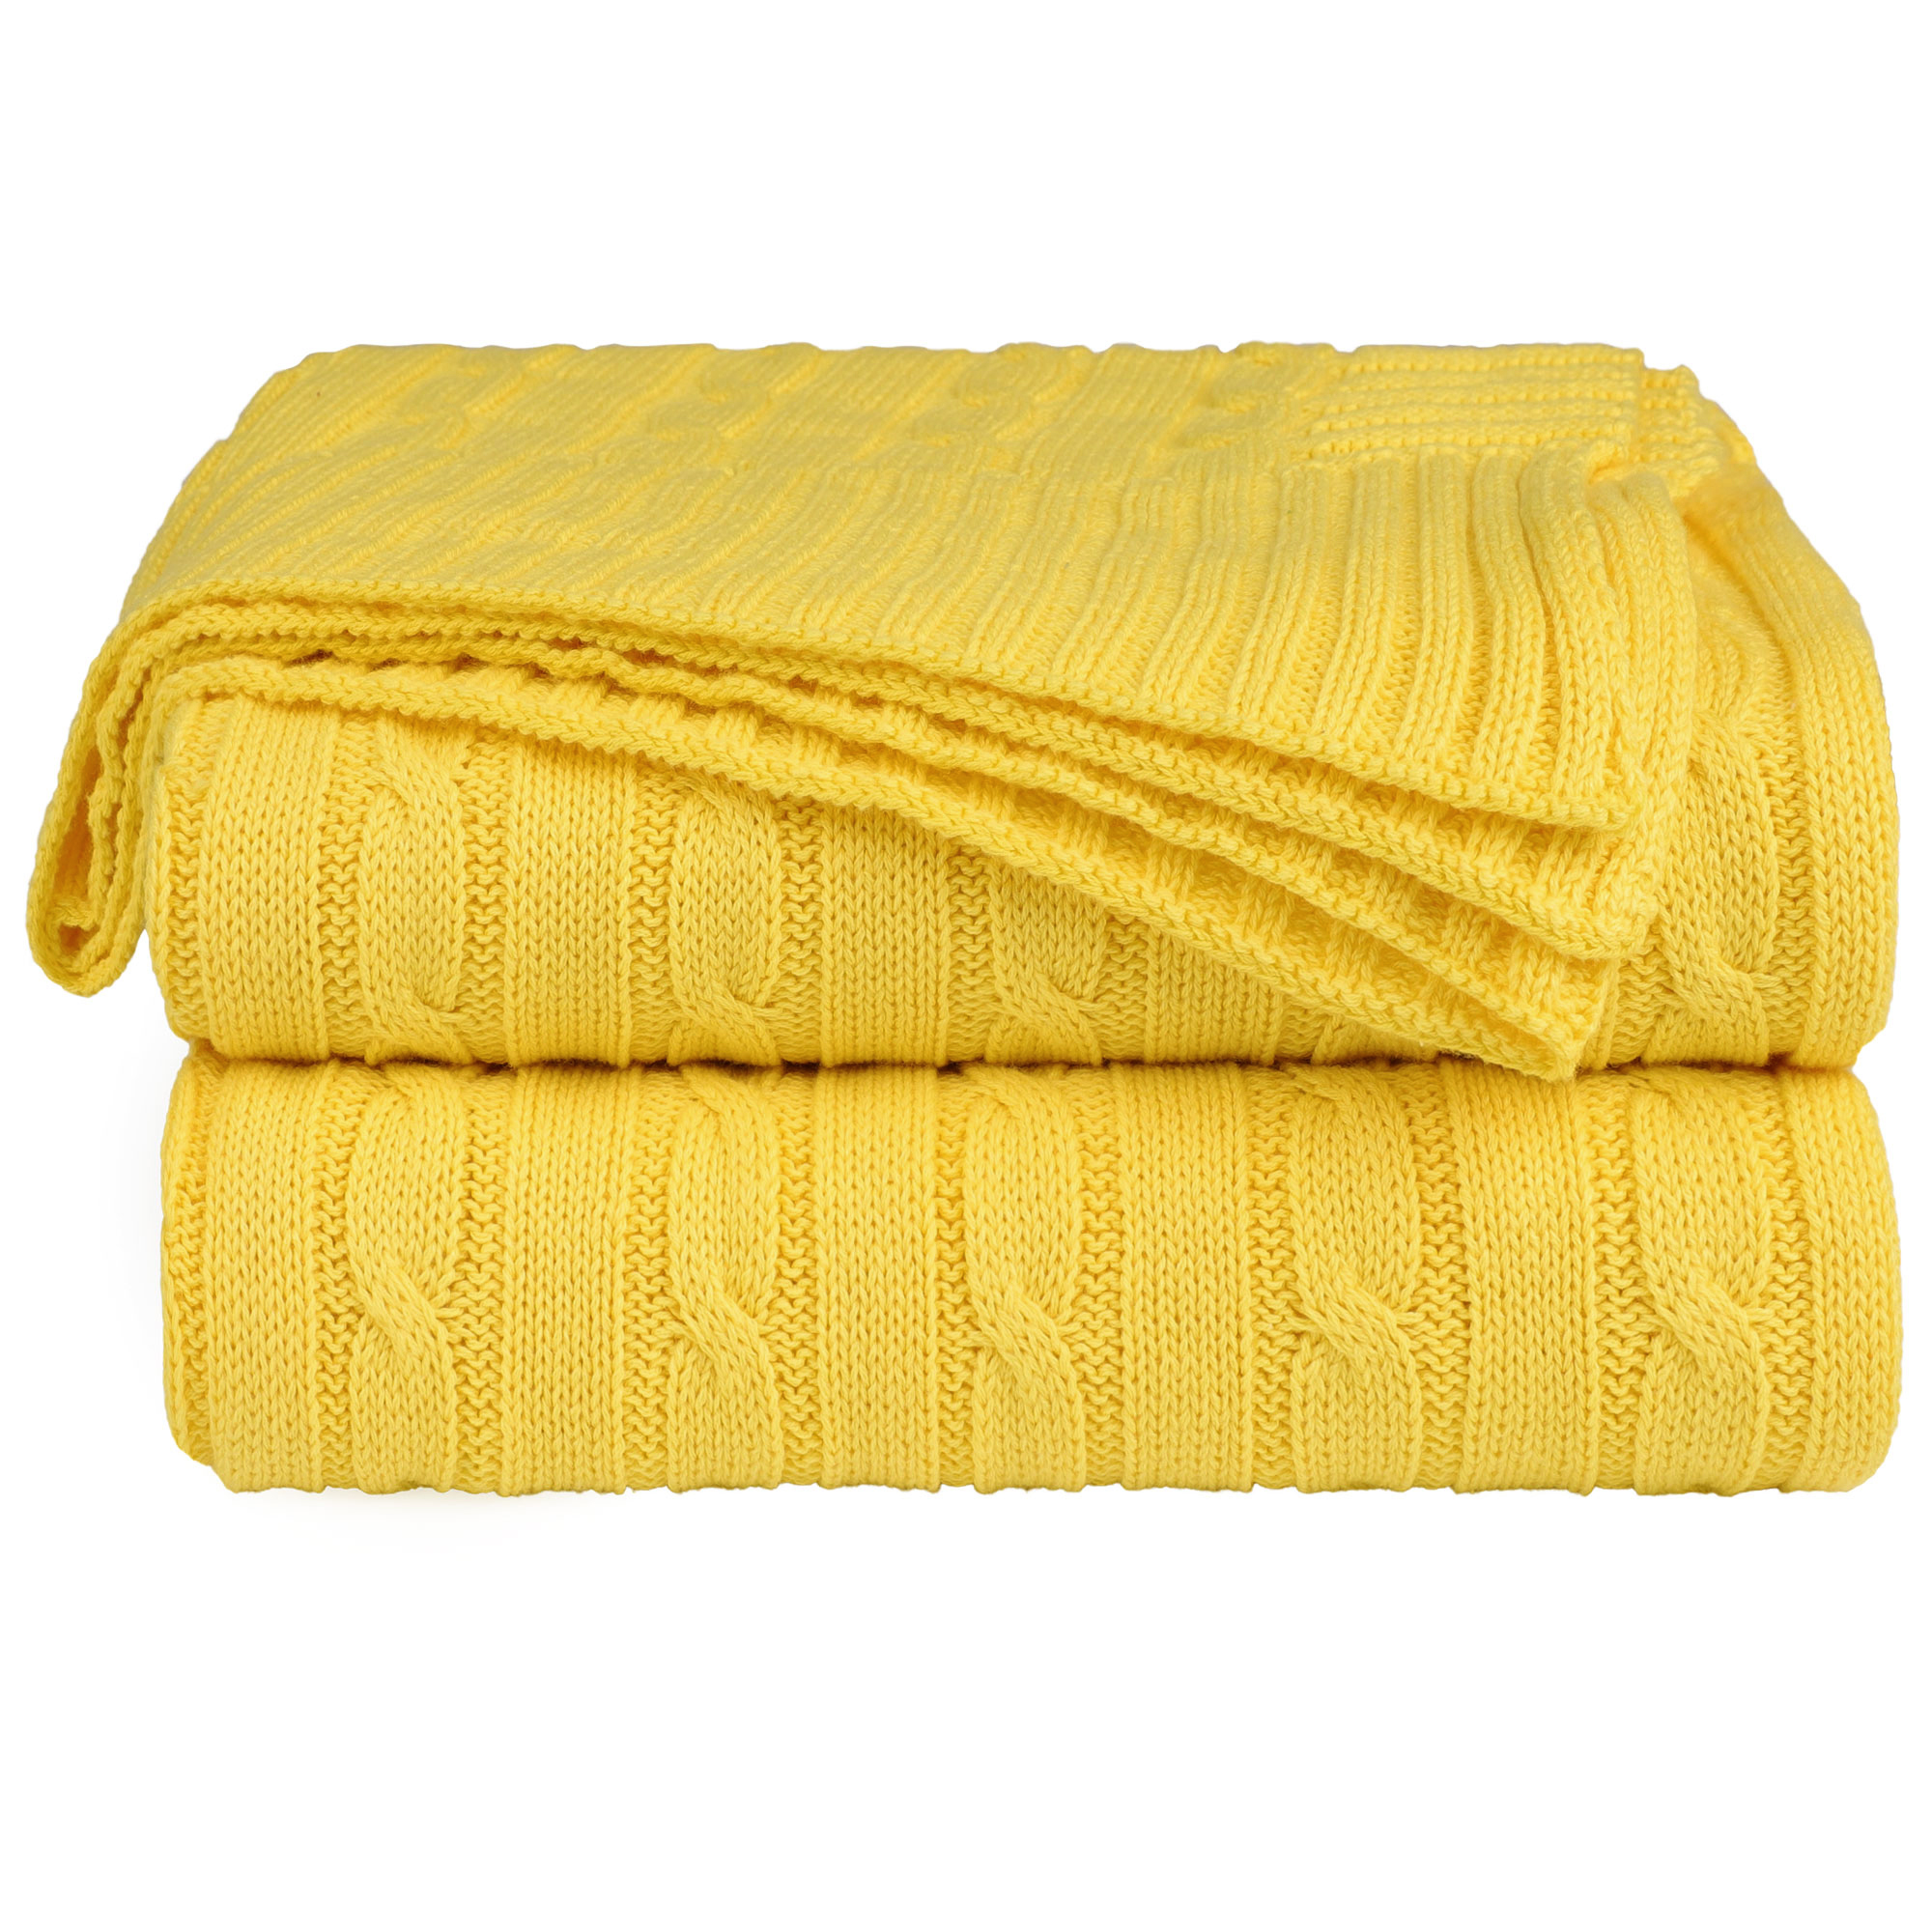 Home Decor 100% Cotton Soft Cable Knit Throw Blanket Yellow